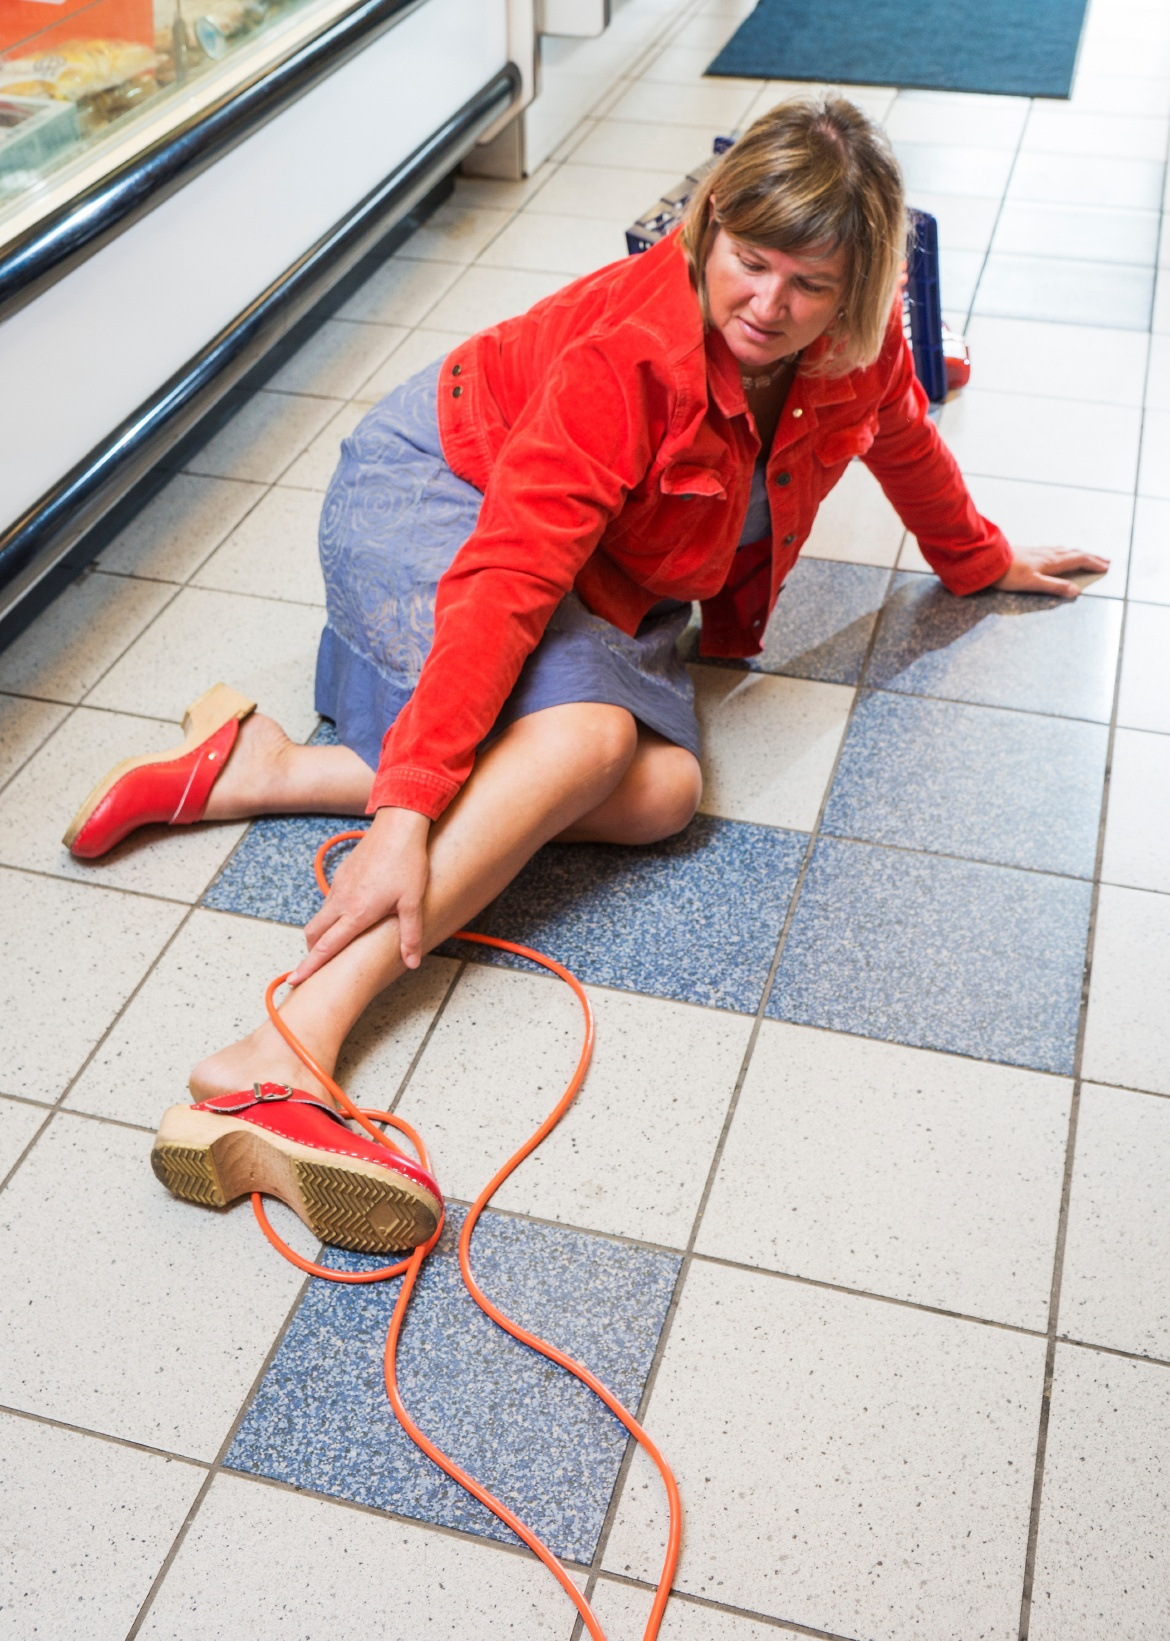 Common Causes of Slip and Fall Injuries in Georgia